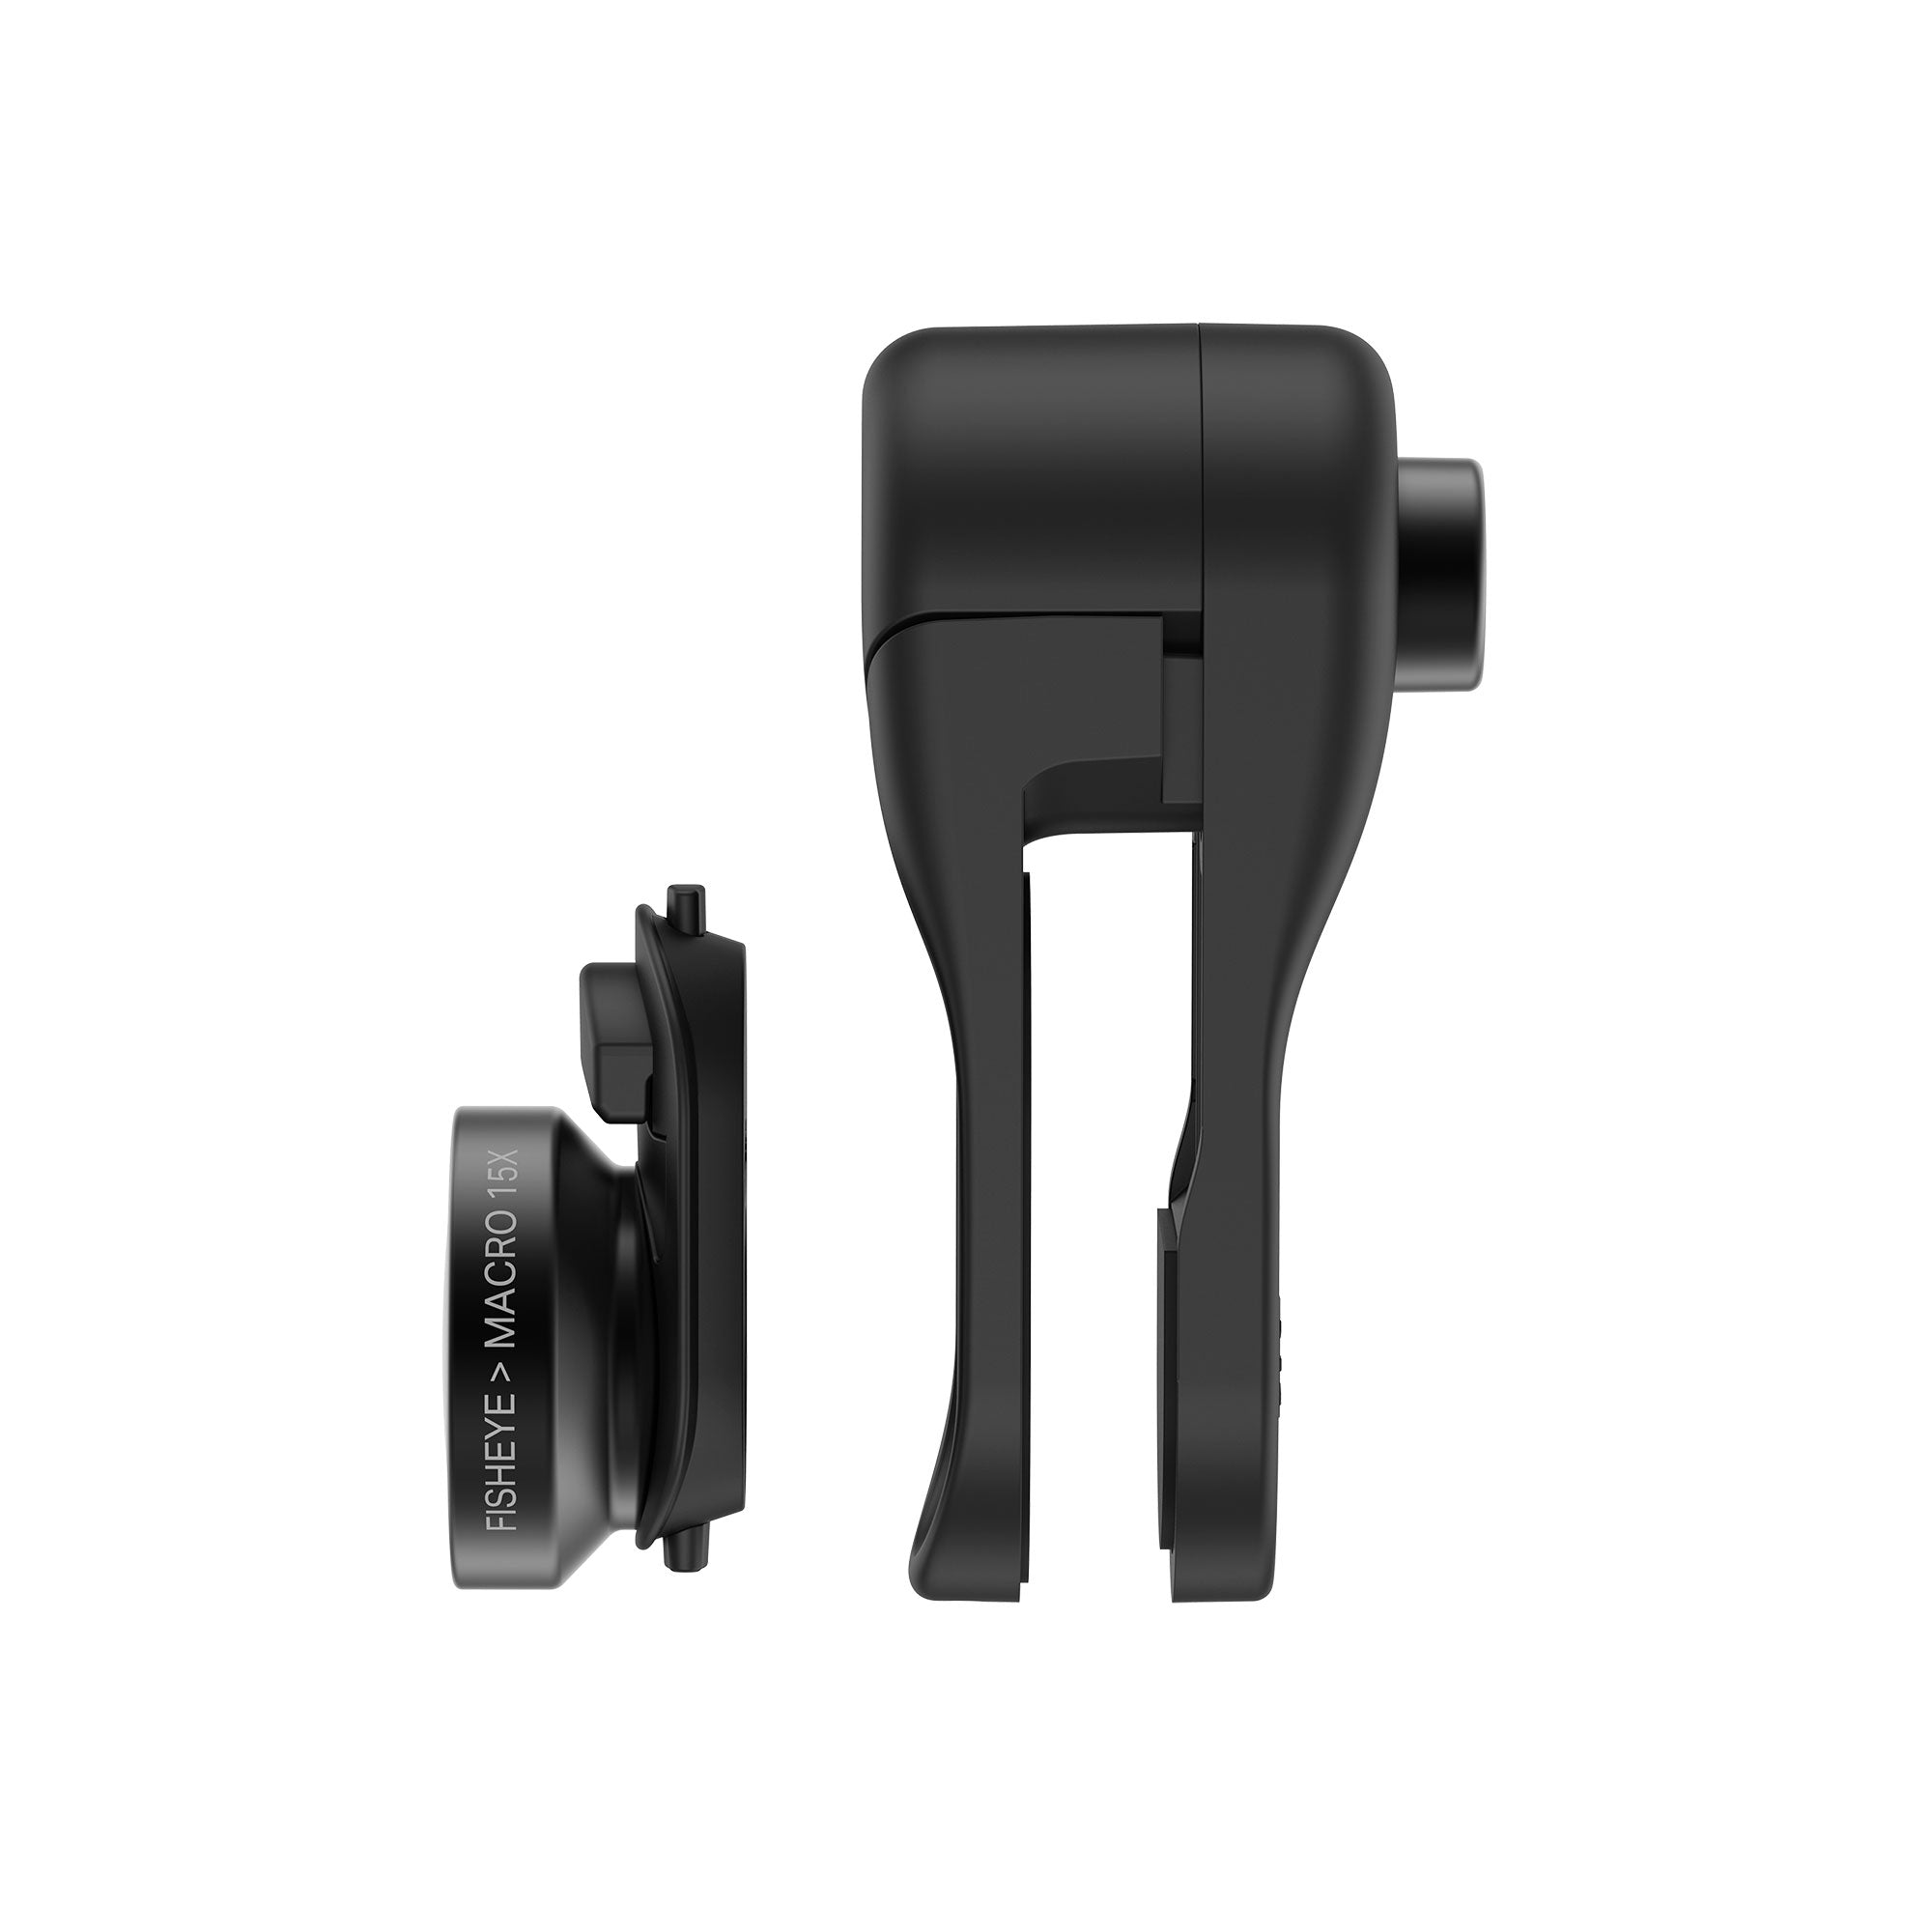 filmer 39 s kit for most devices olloclip. Black Bedroom Furniture Sets. Home Design Ideas